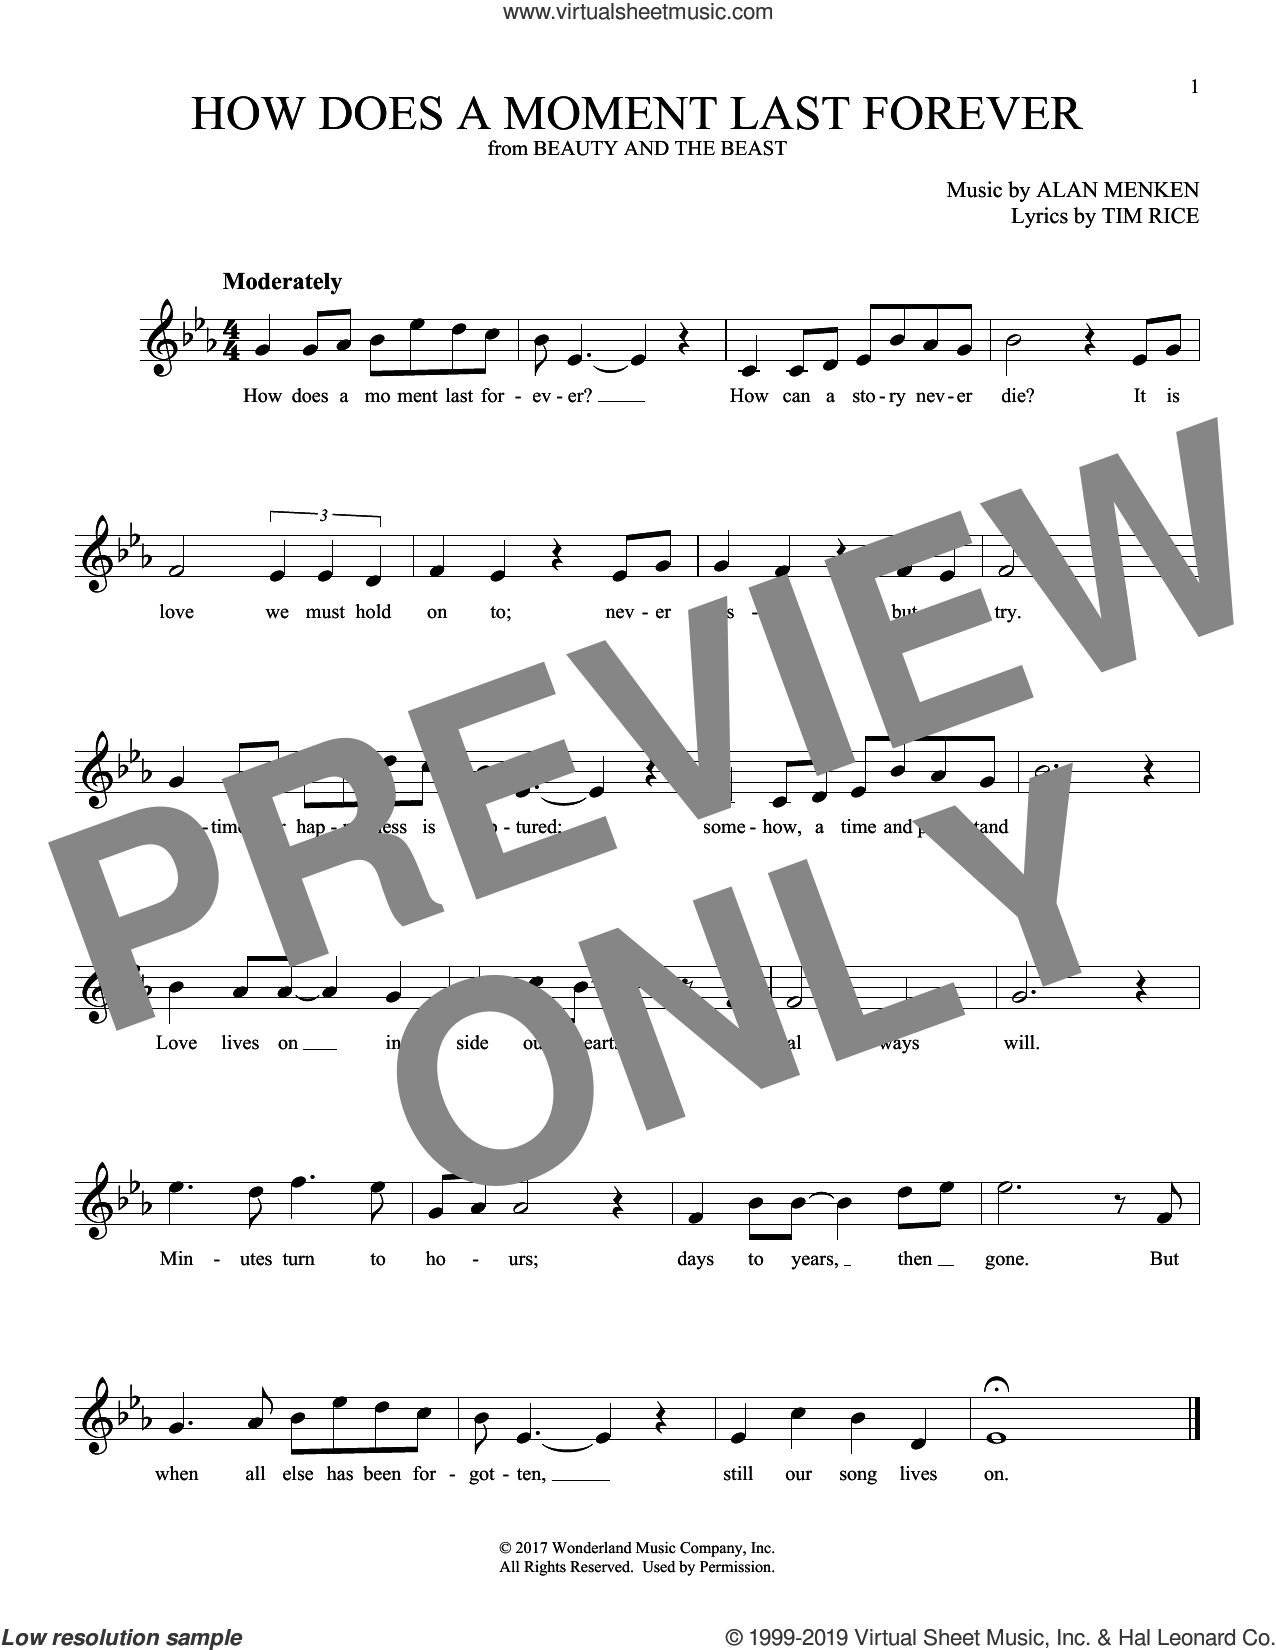 How Does A Moment Last Forever (from Beauty and the Beast) sheet music for ocarina solo by Alan Menken and Tim Rice, intermediate skill level